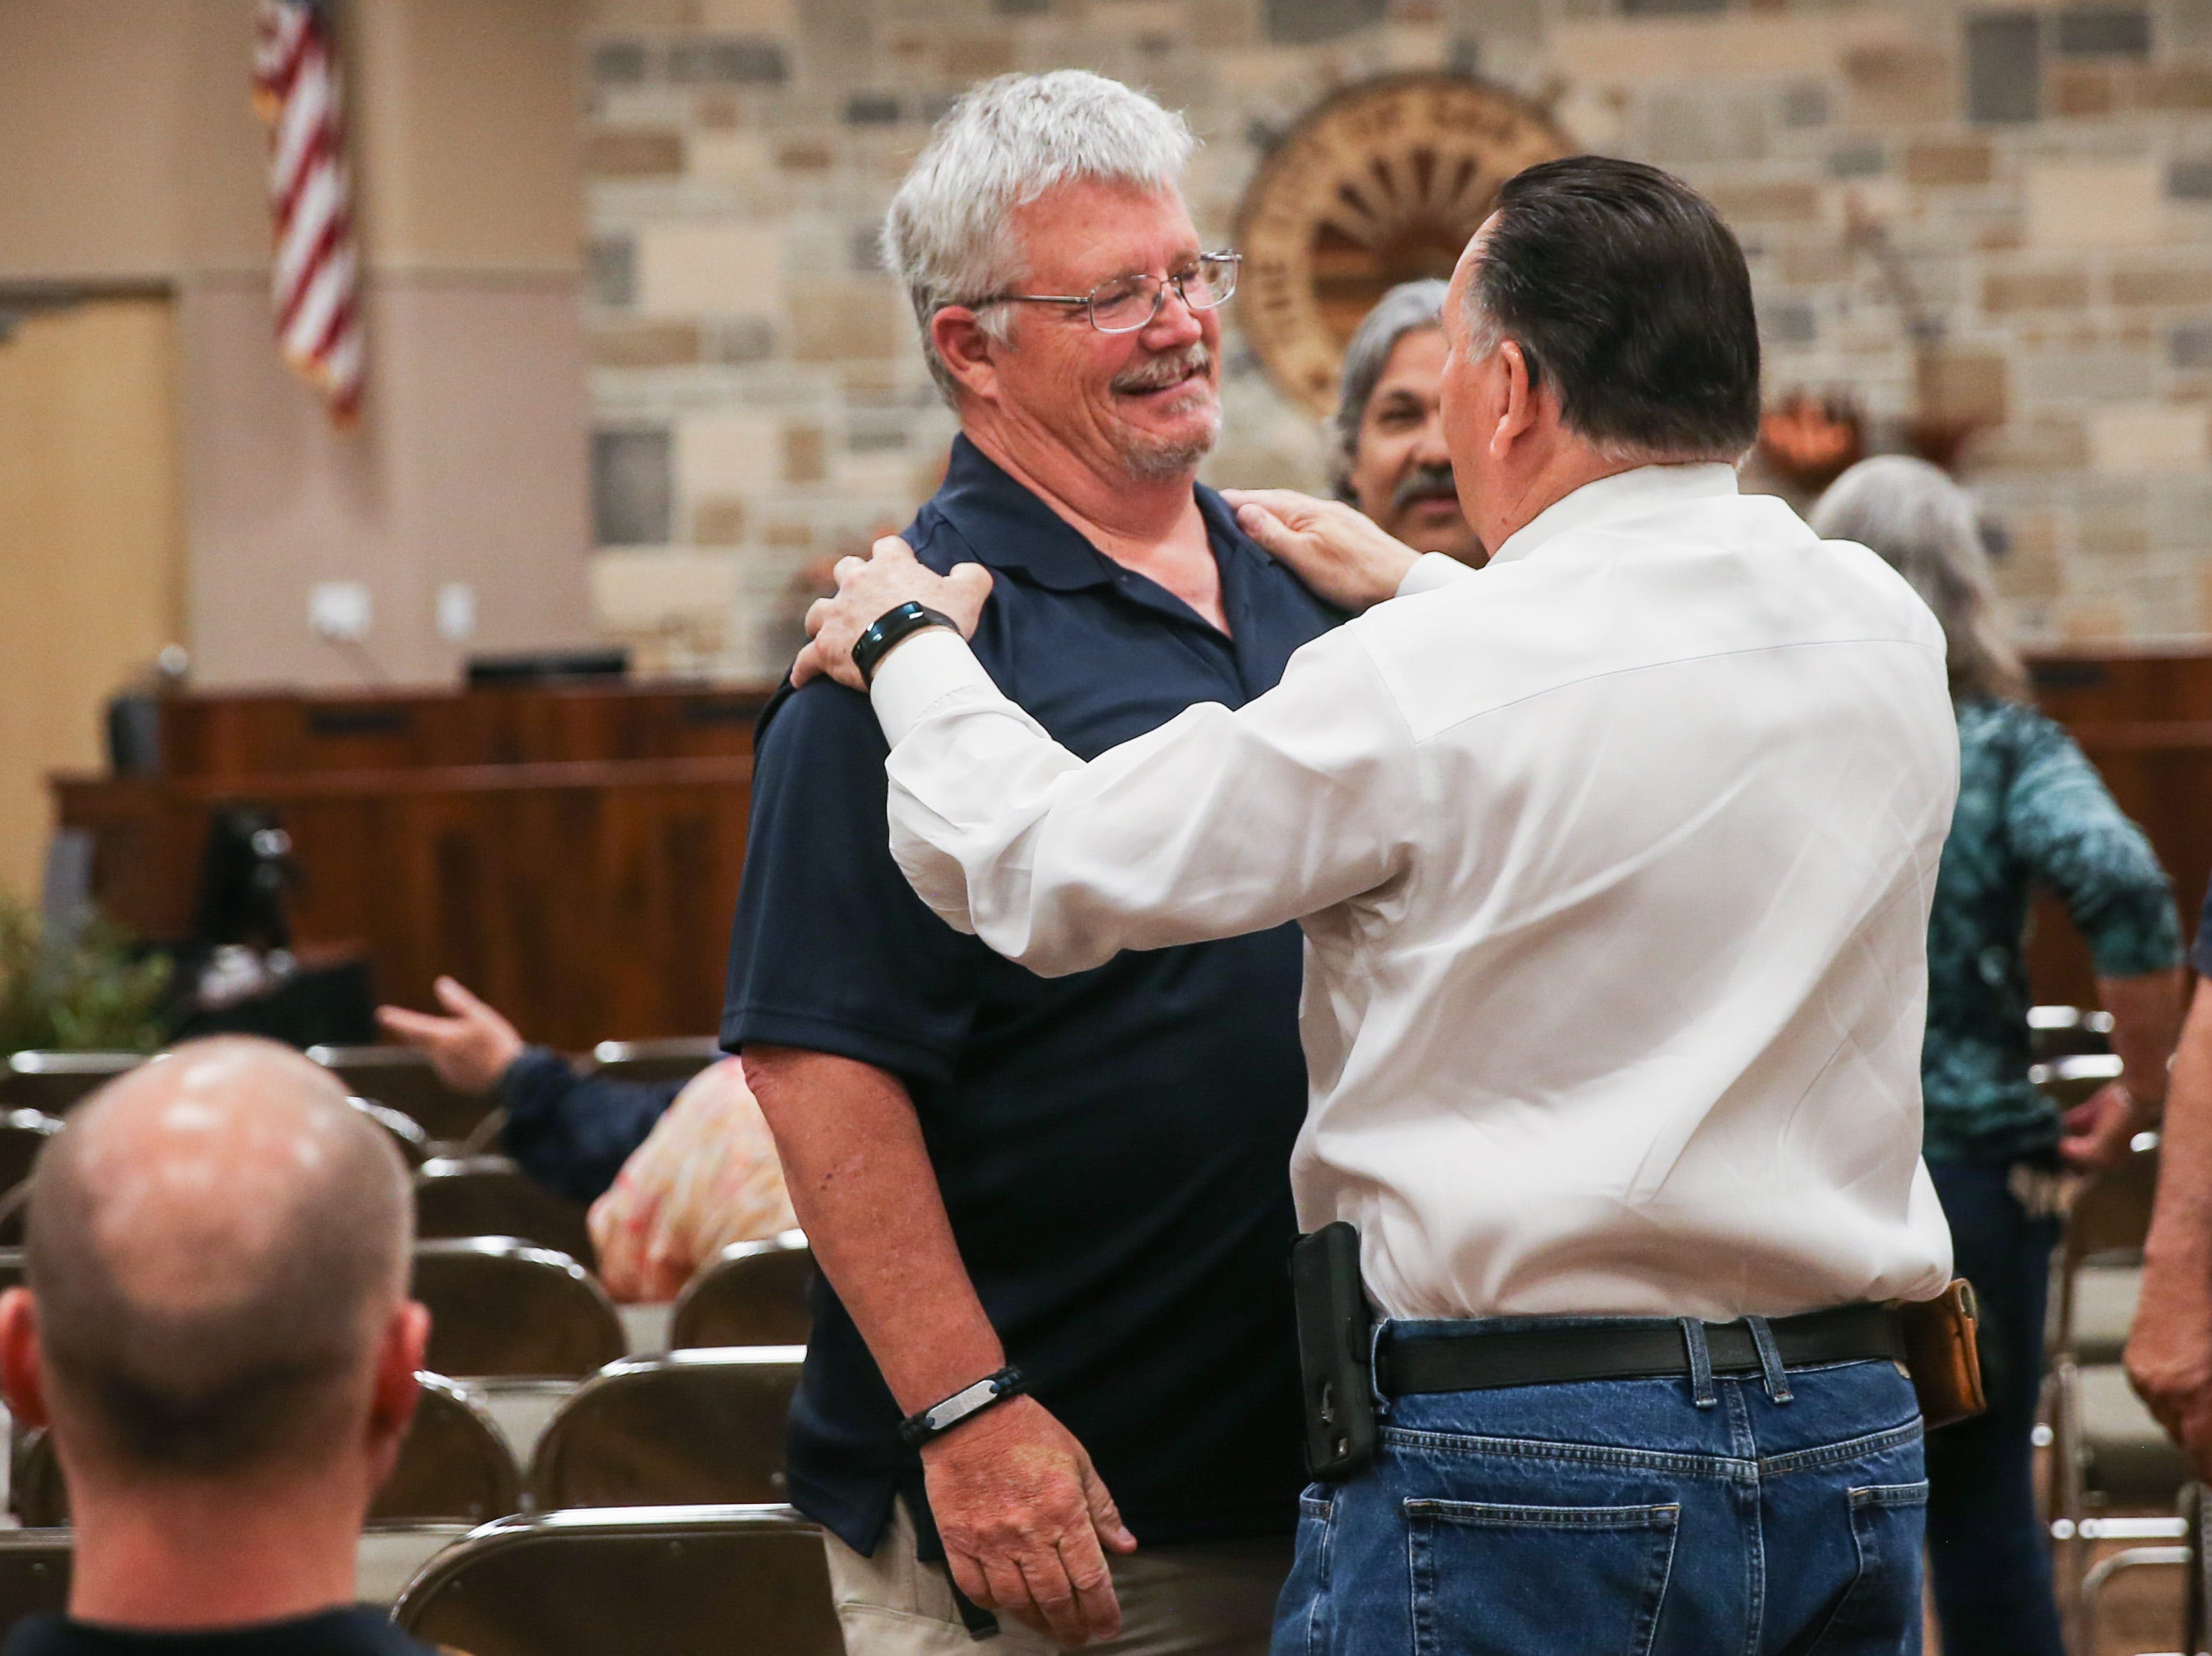 Harry Thomas, City of San Angelo council member, greets Officer Brian Bylsma before Bylsma's retirement ceremony Friday, March 29, 2019, at the McNease Convention Center.